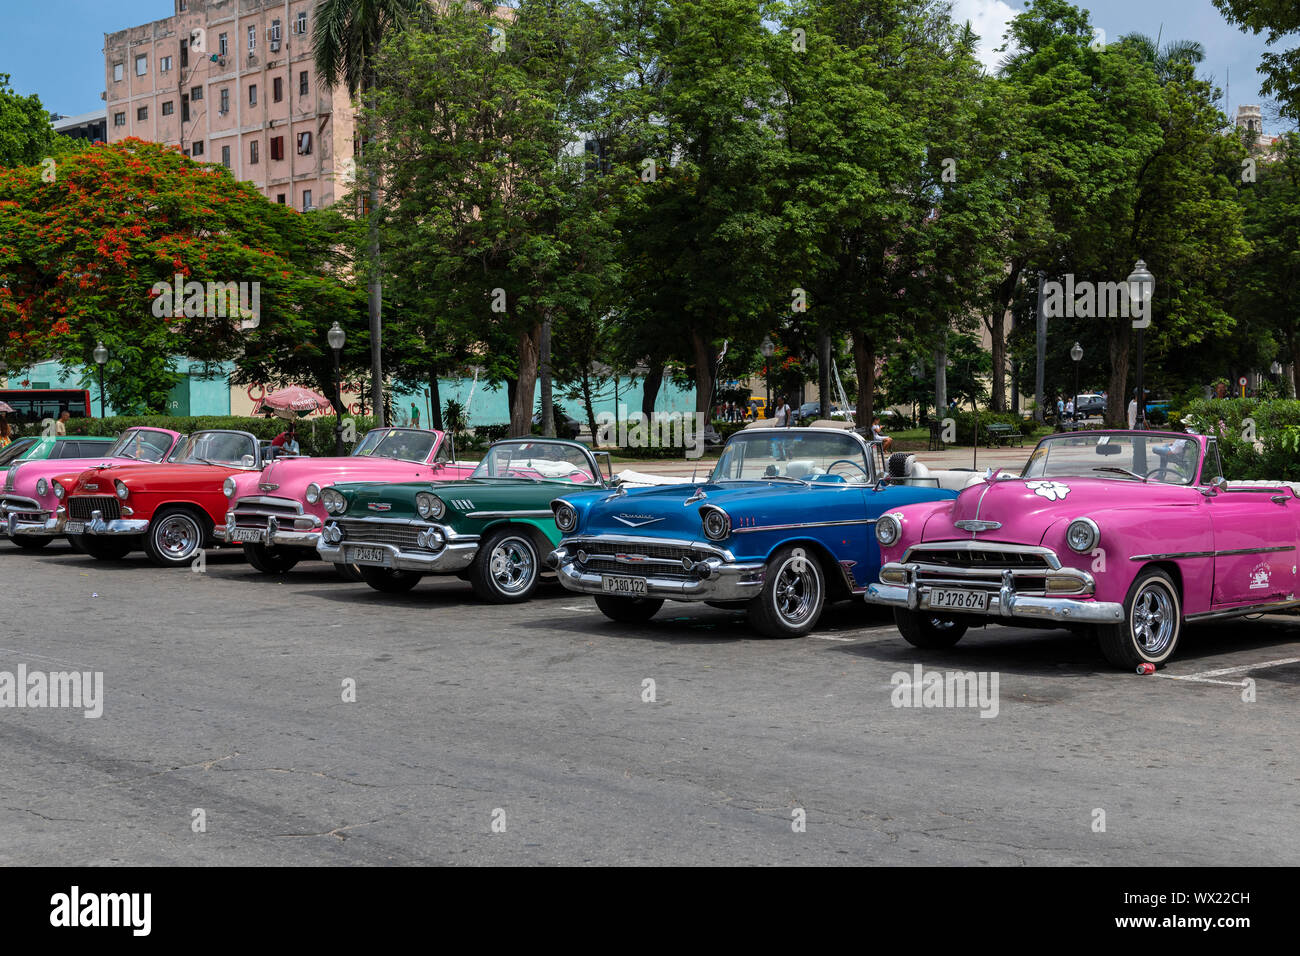 LA HAVANA, CUBA - JUNE  27, 2019: Traditional taxi in Havana Downtown waiting for customers in city sightseeing in authentic and stylish cars from the Stock Photo